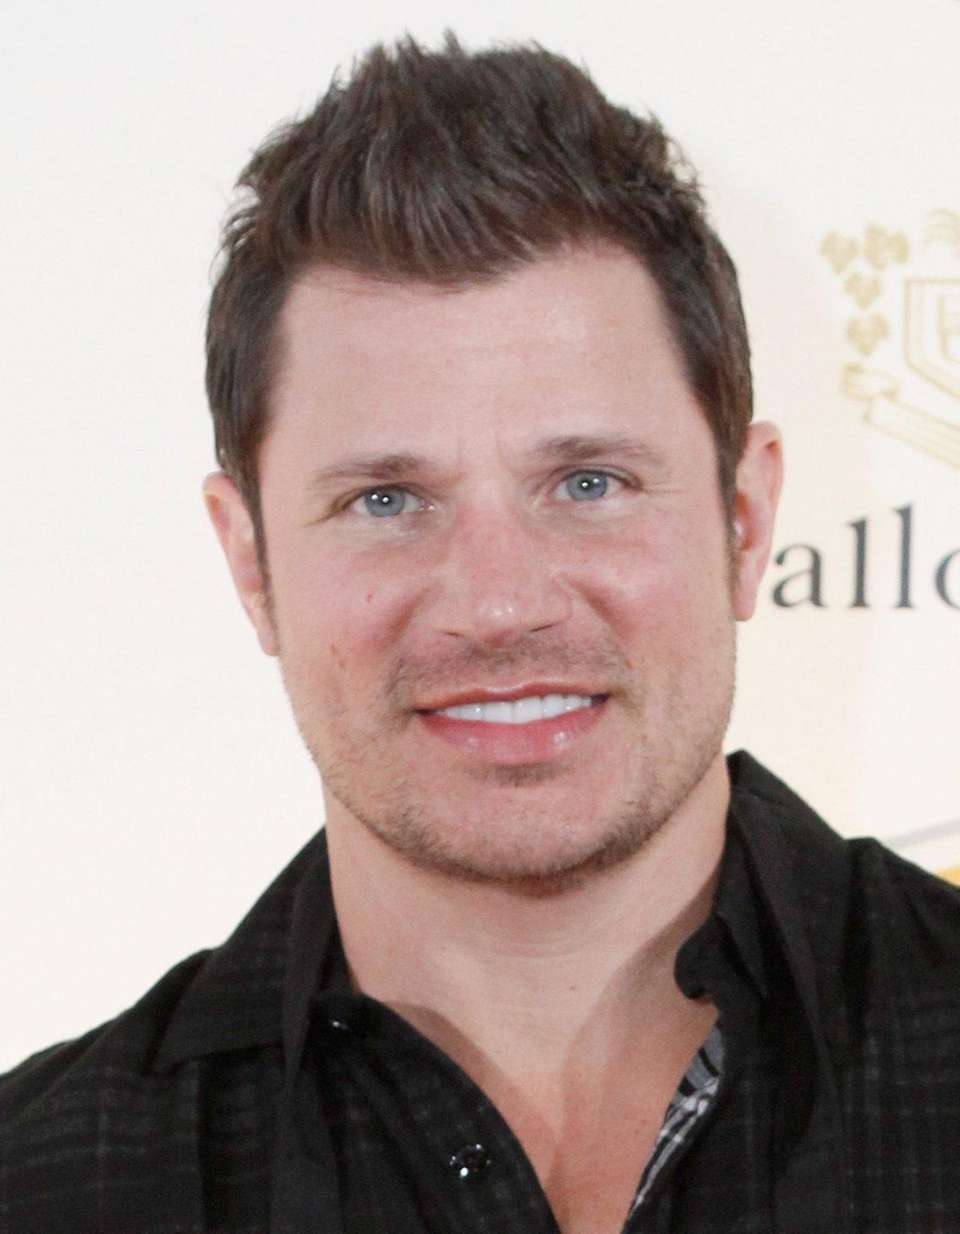 Singer Nick Lachey and wife, Vanessa, welcomed son